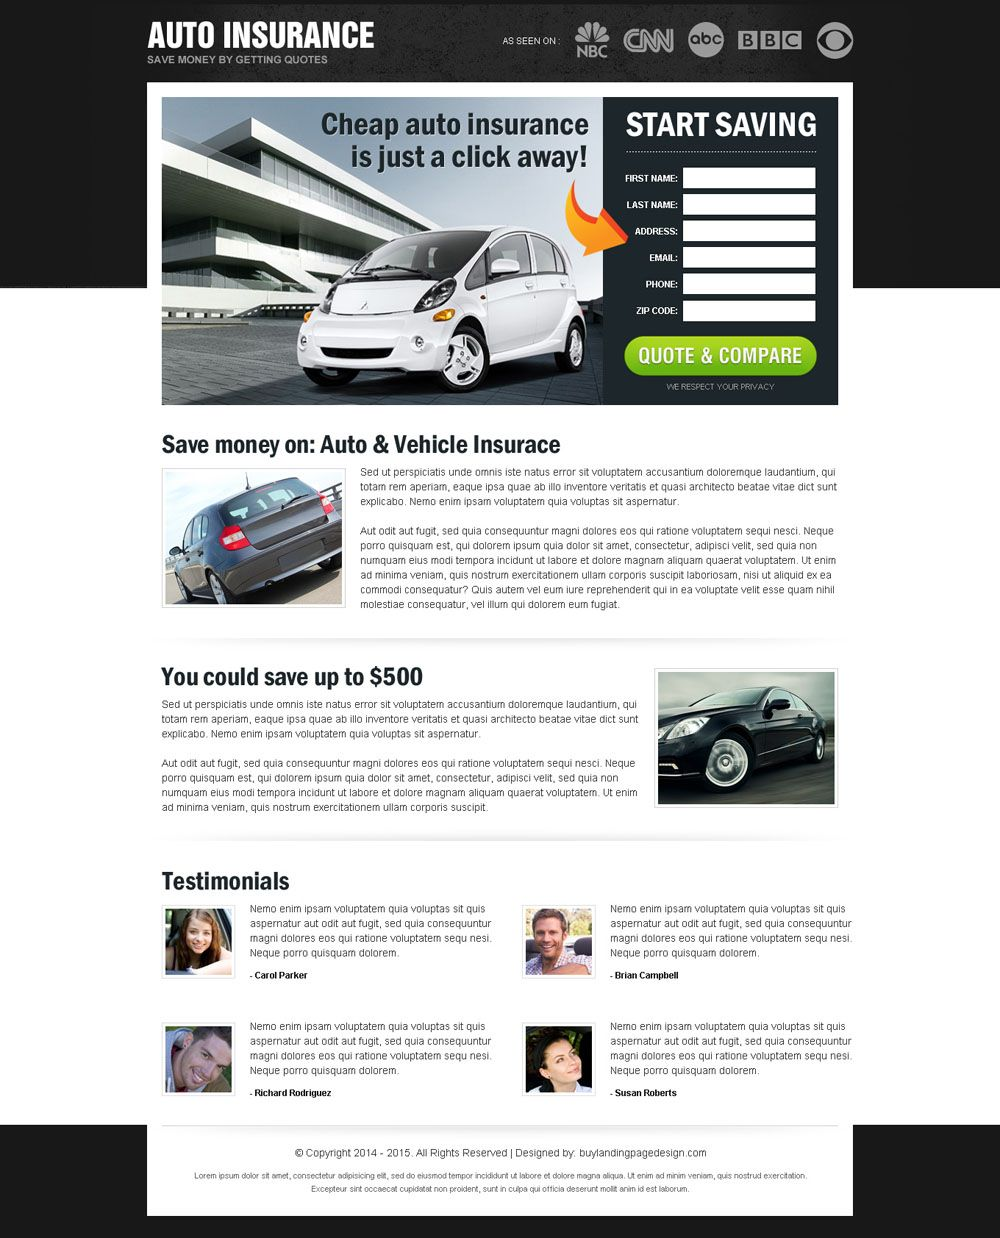 Save money on auto insurance most converting and appealing html landing page